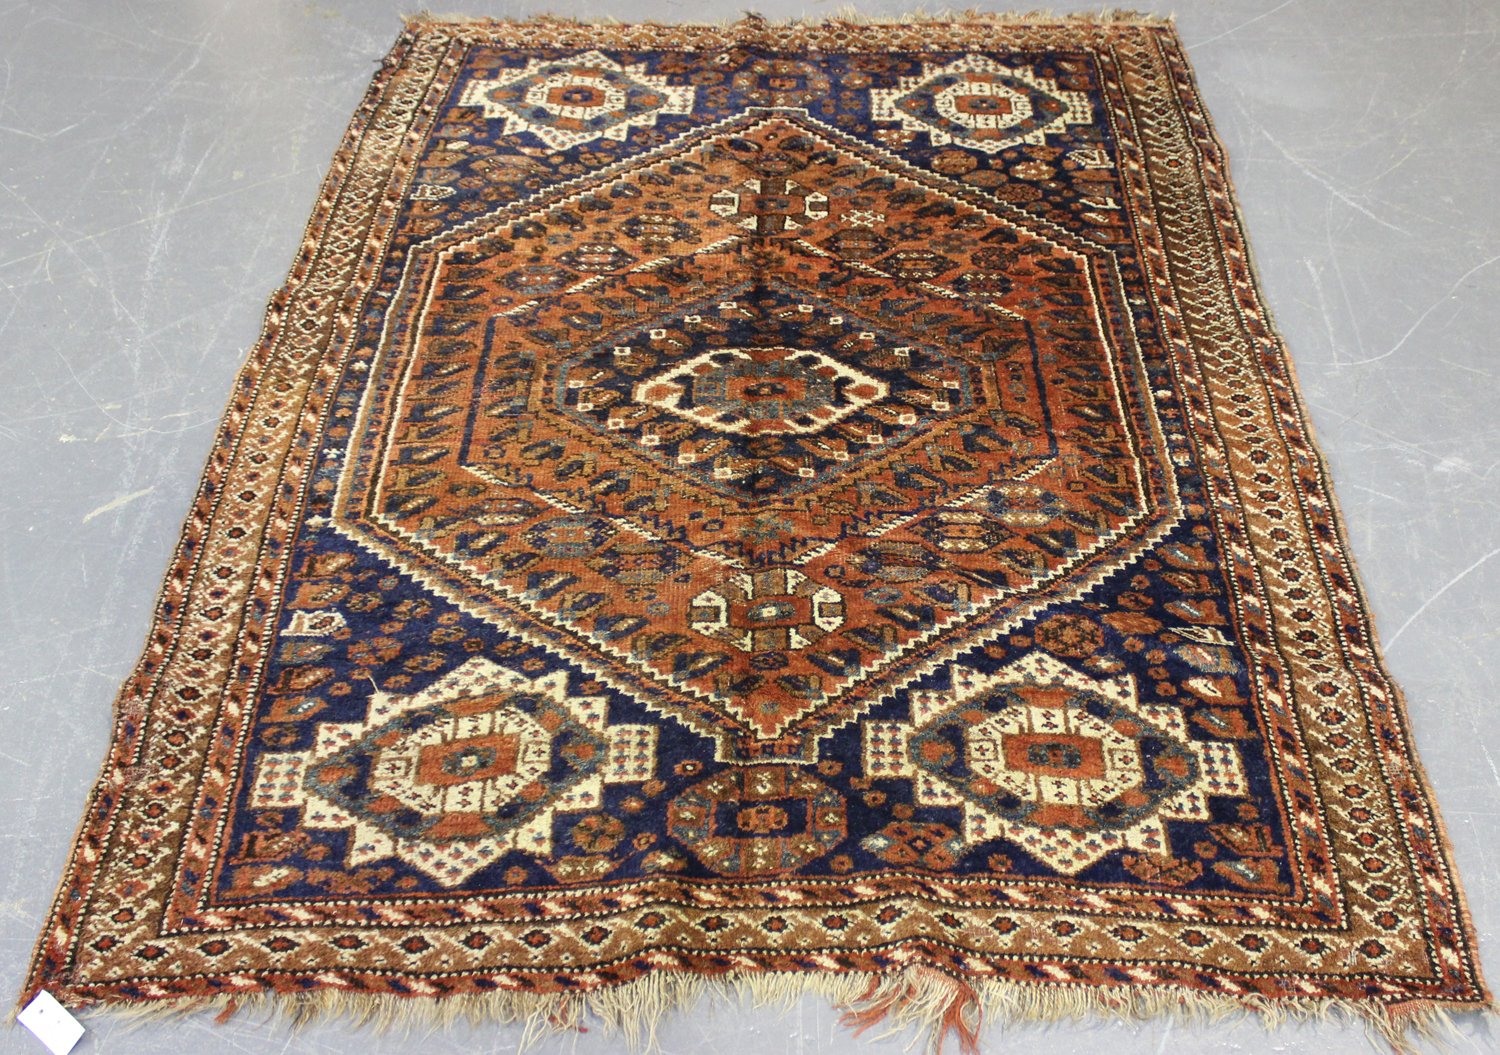 Lot 2907 - A Shiraz rug, South-west Persia, early 20th century, the red field with a lozenge medallion,